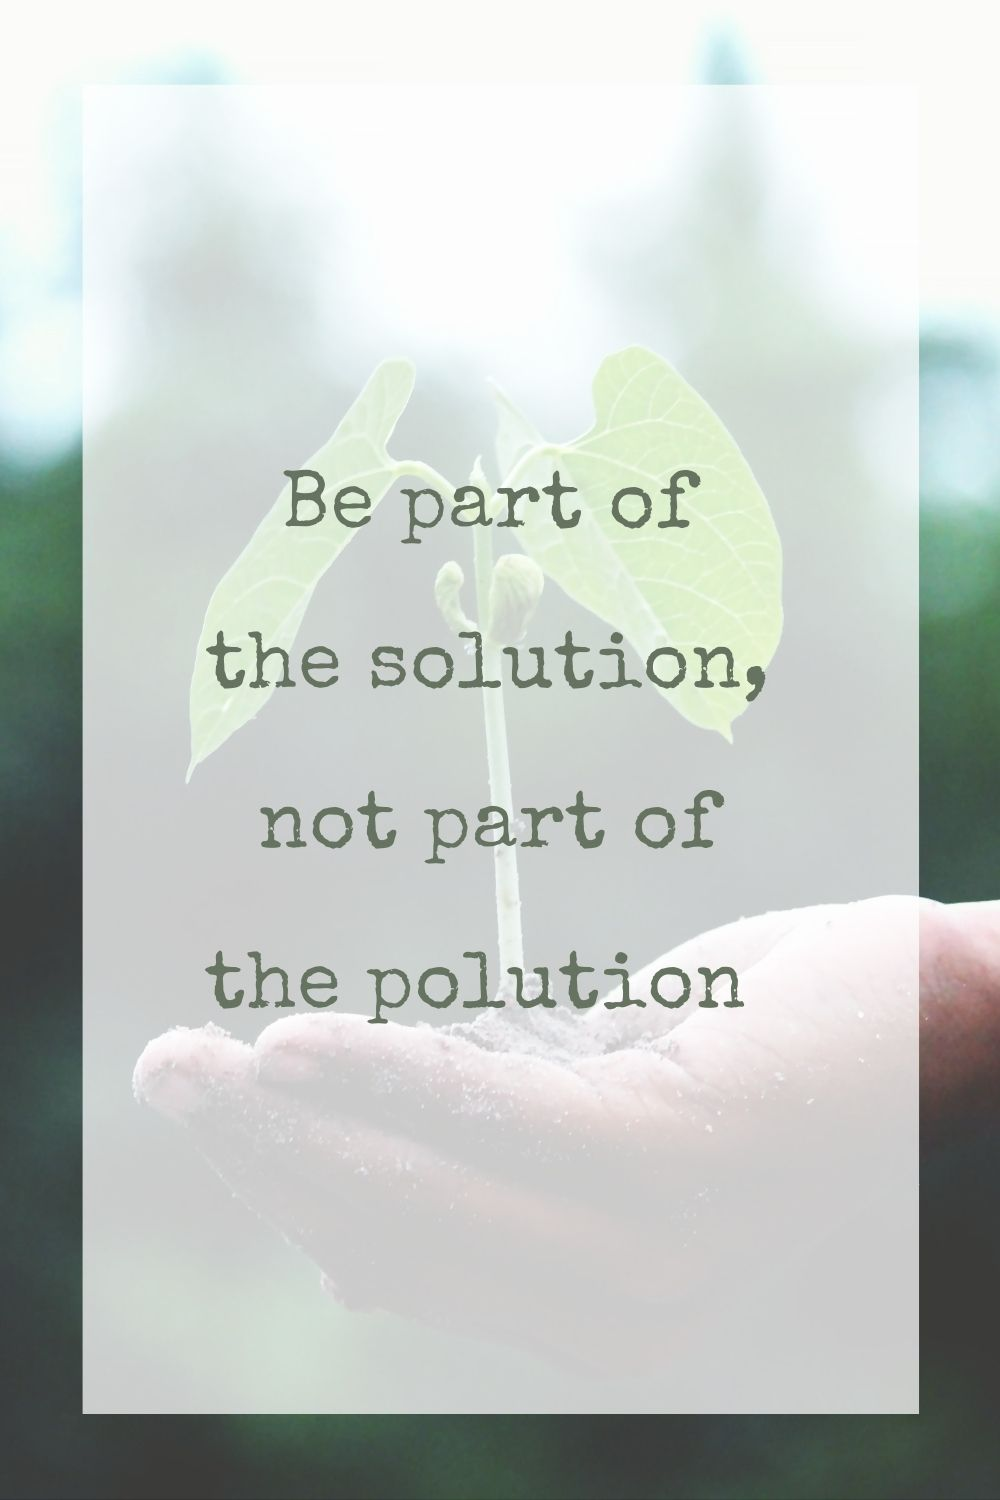 Be part of the solution, not part of the pollution